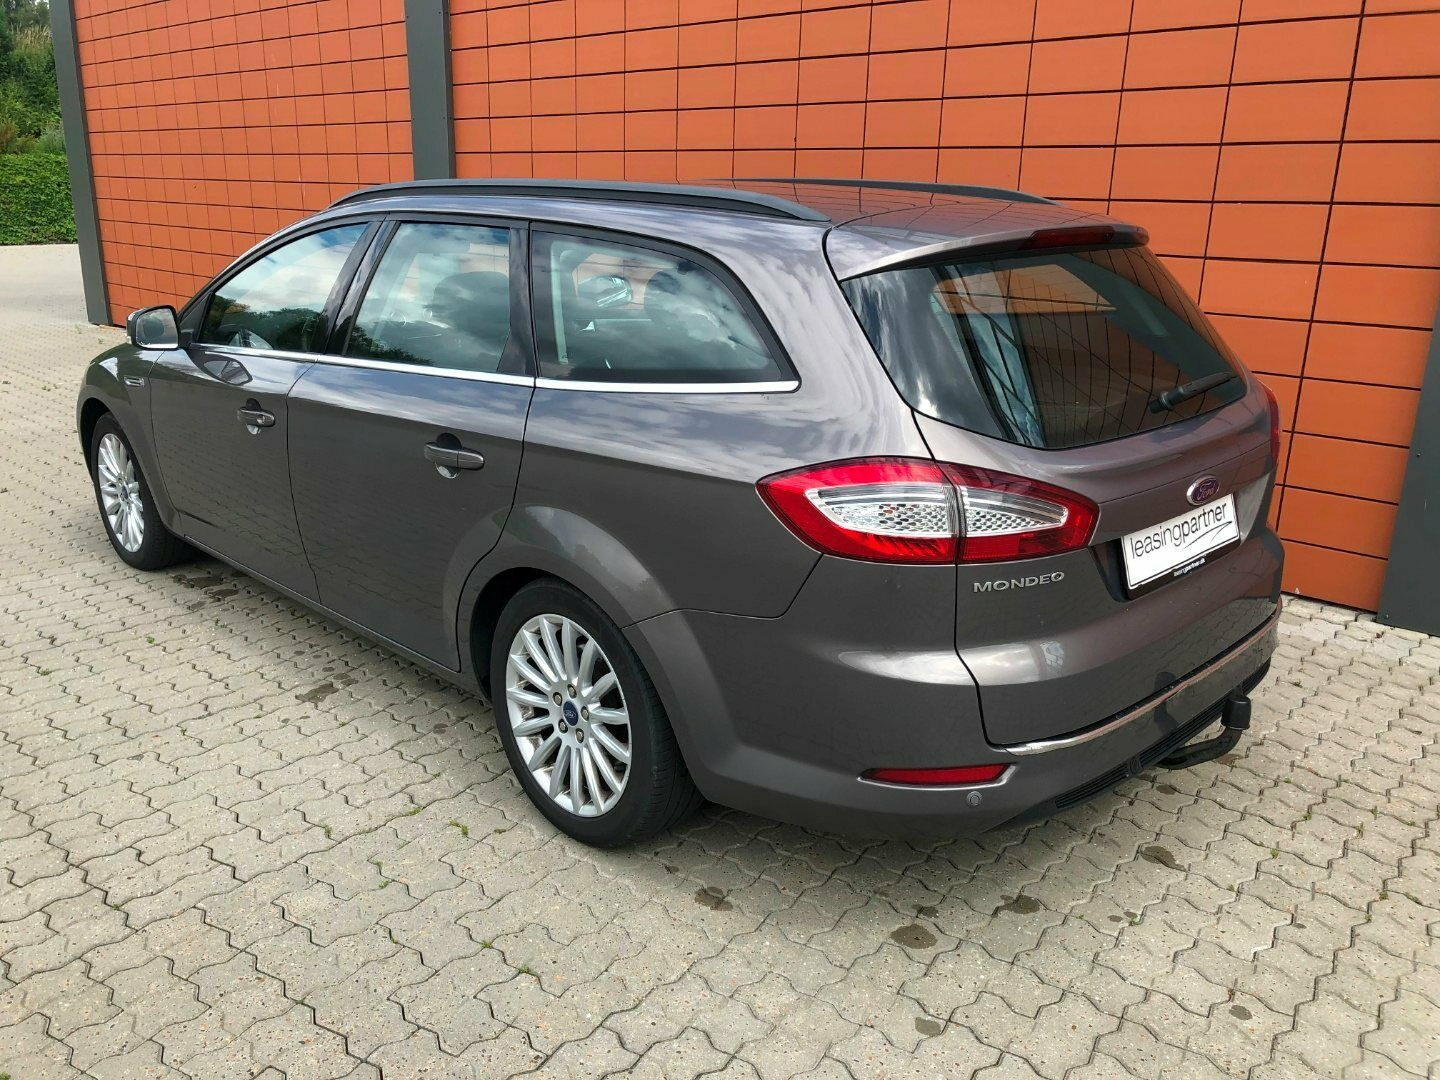 Ford Mondeo 2,0 TDCi 140 Collection stc. 5d, Sort